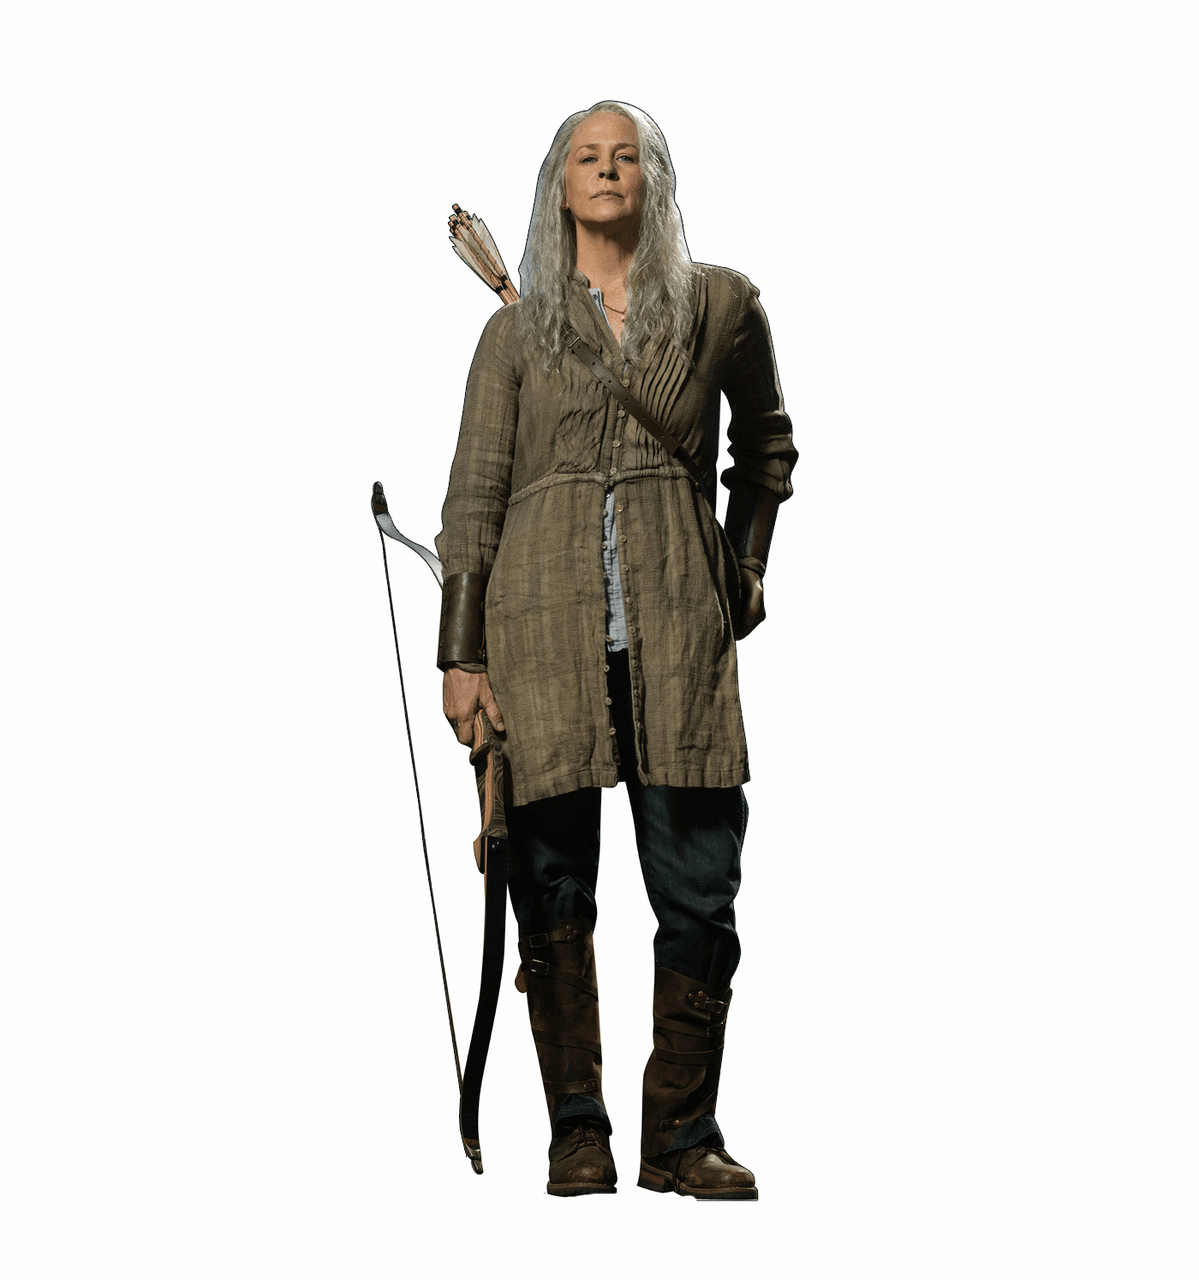 Walking Dead Carol Peletier Standee